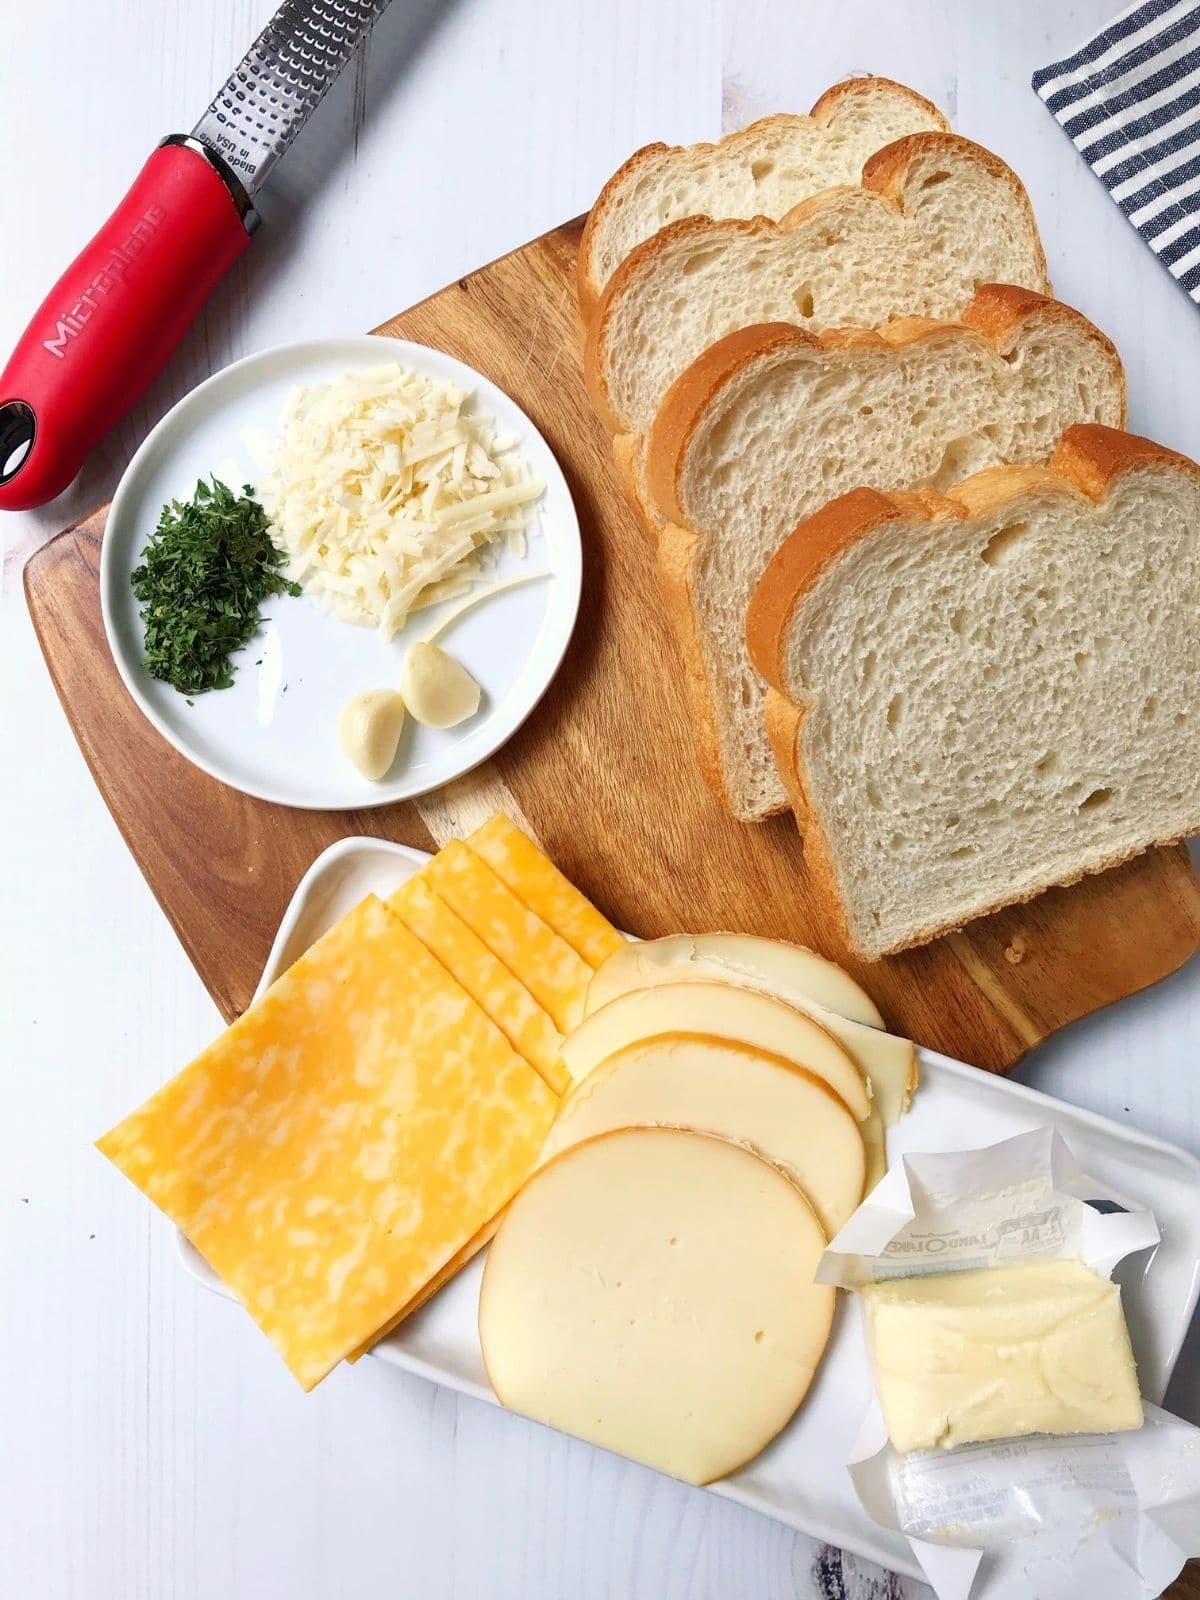 butter and sandwich ingredients on a board